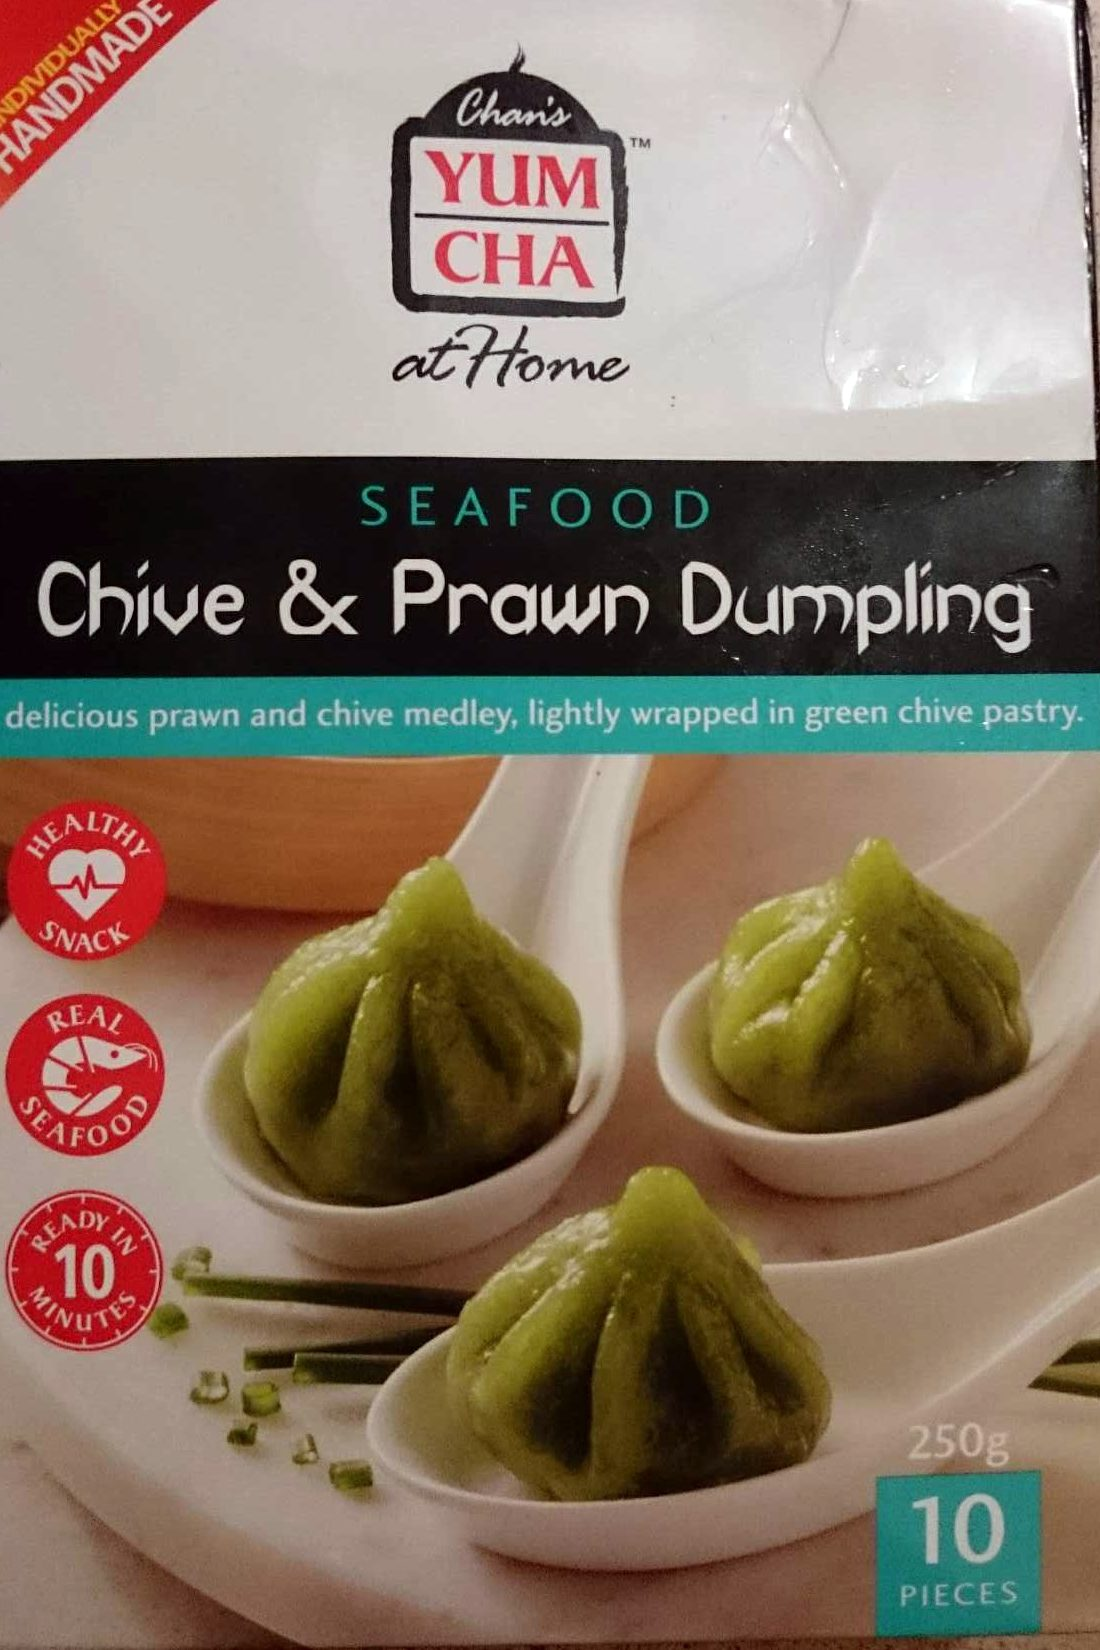 Seafood Chive and Prawn Dumpling - Product